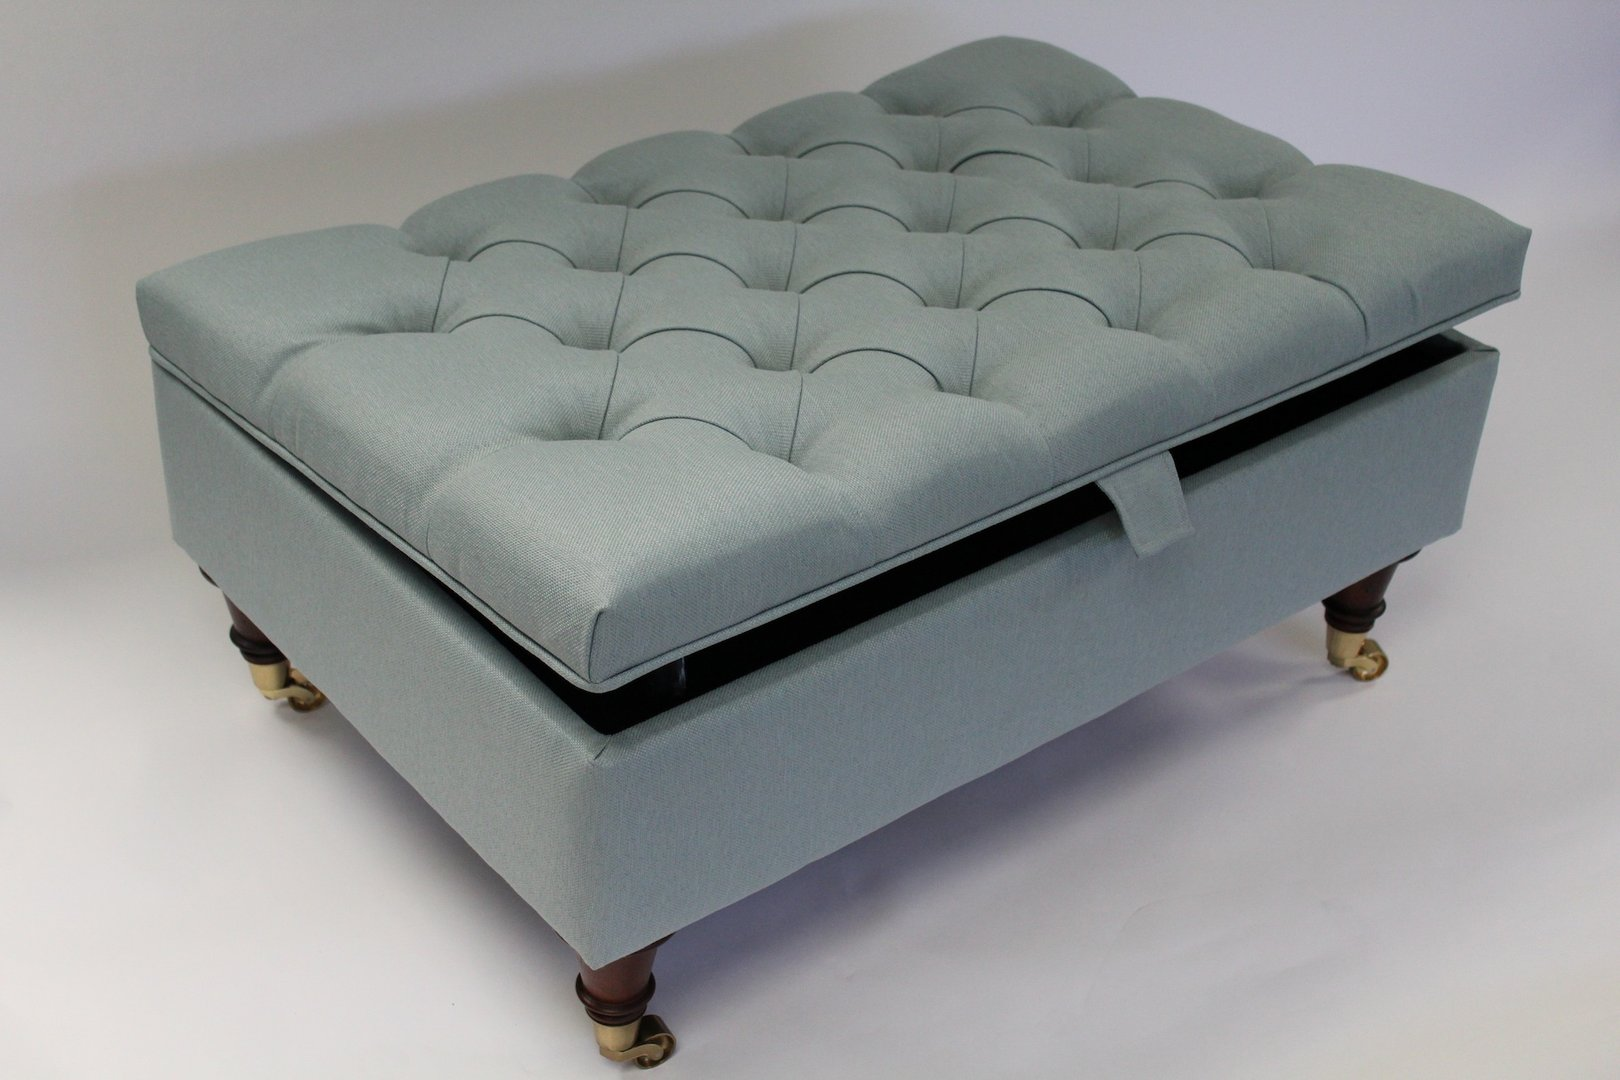 Duck Egg Blue Linen Chesterfield Upholstered Coffee Table Storage